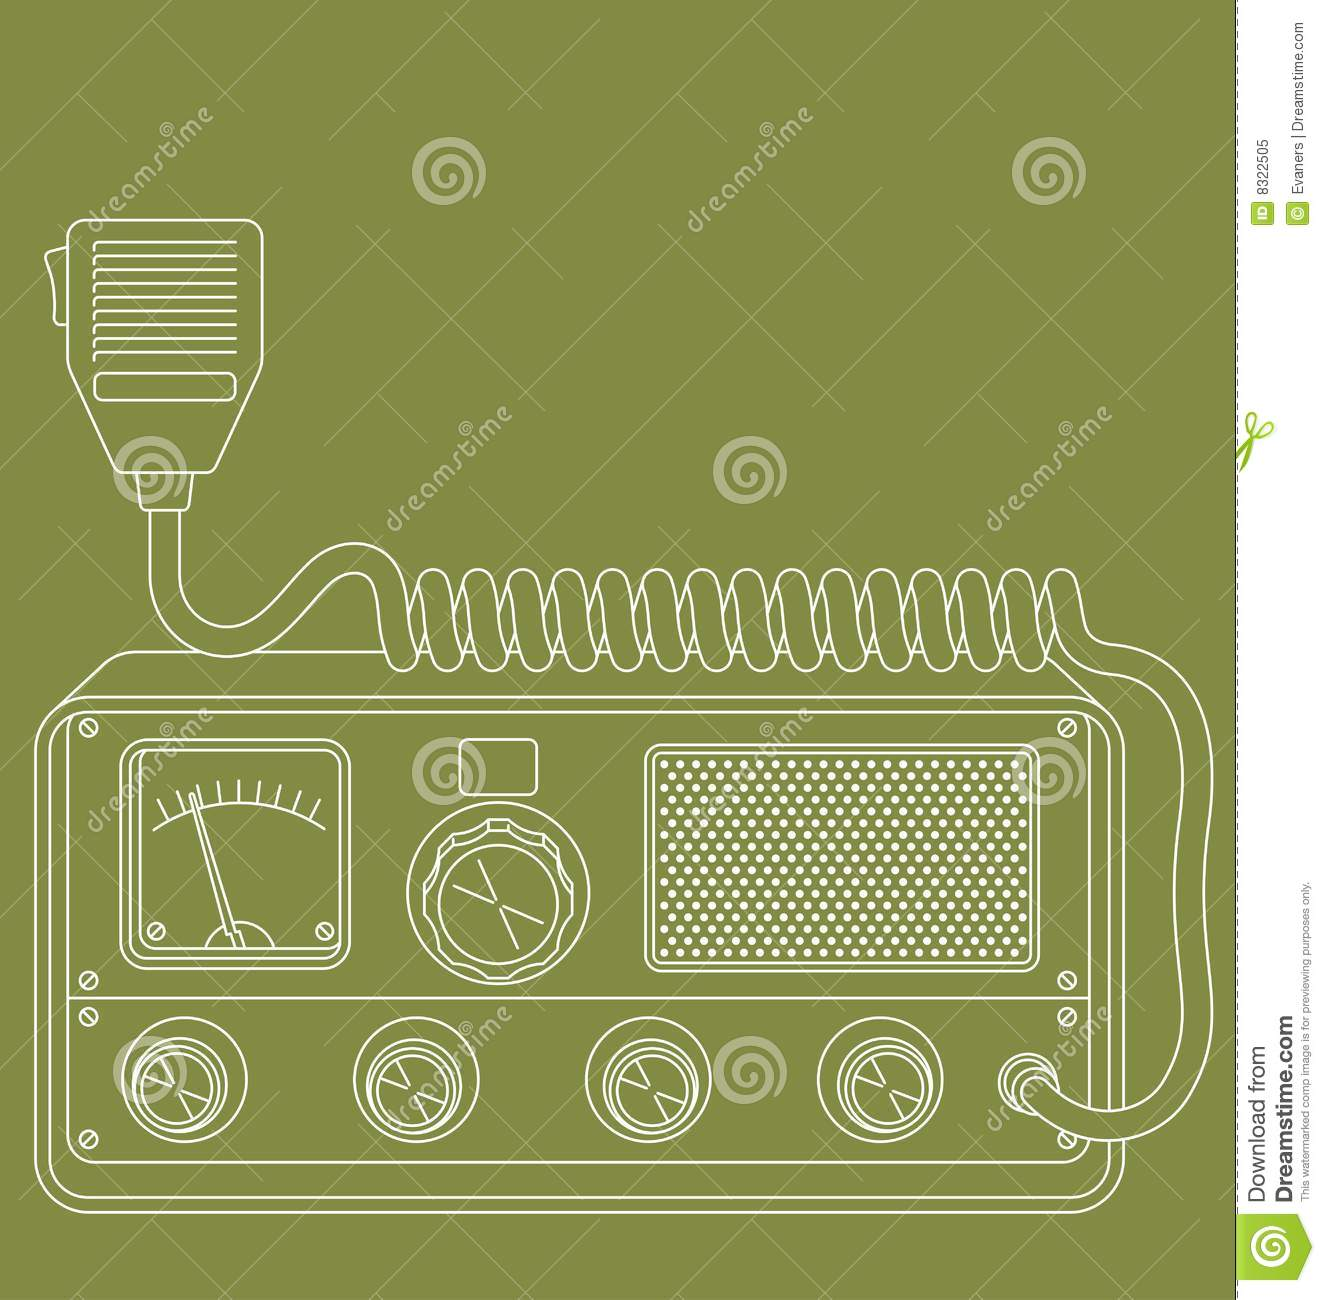 Retro cbradio